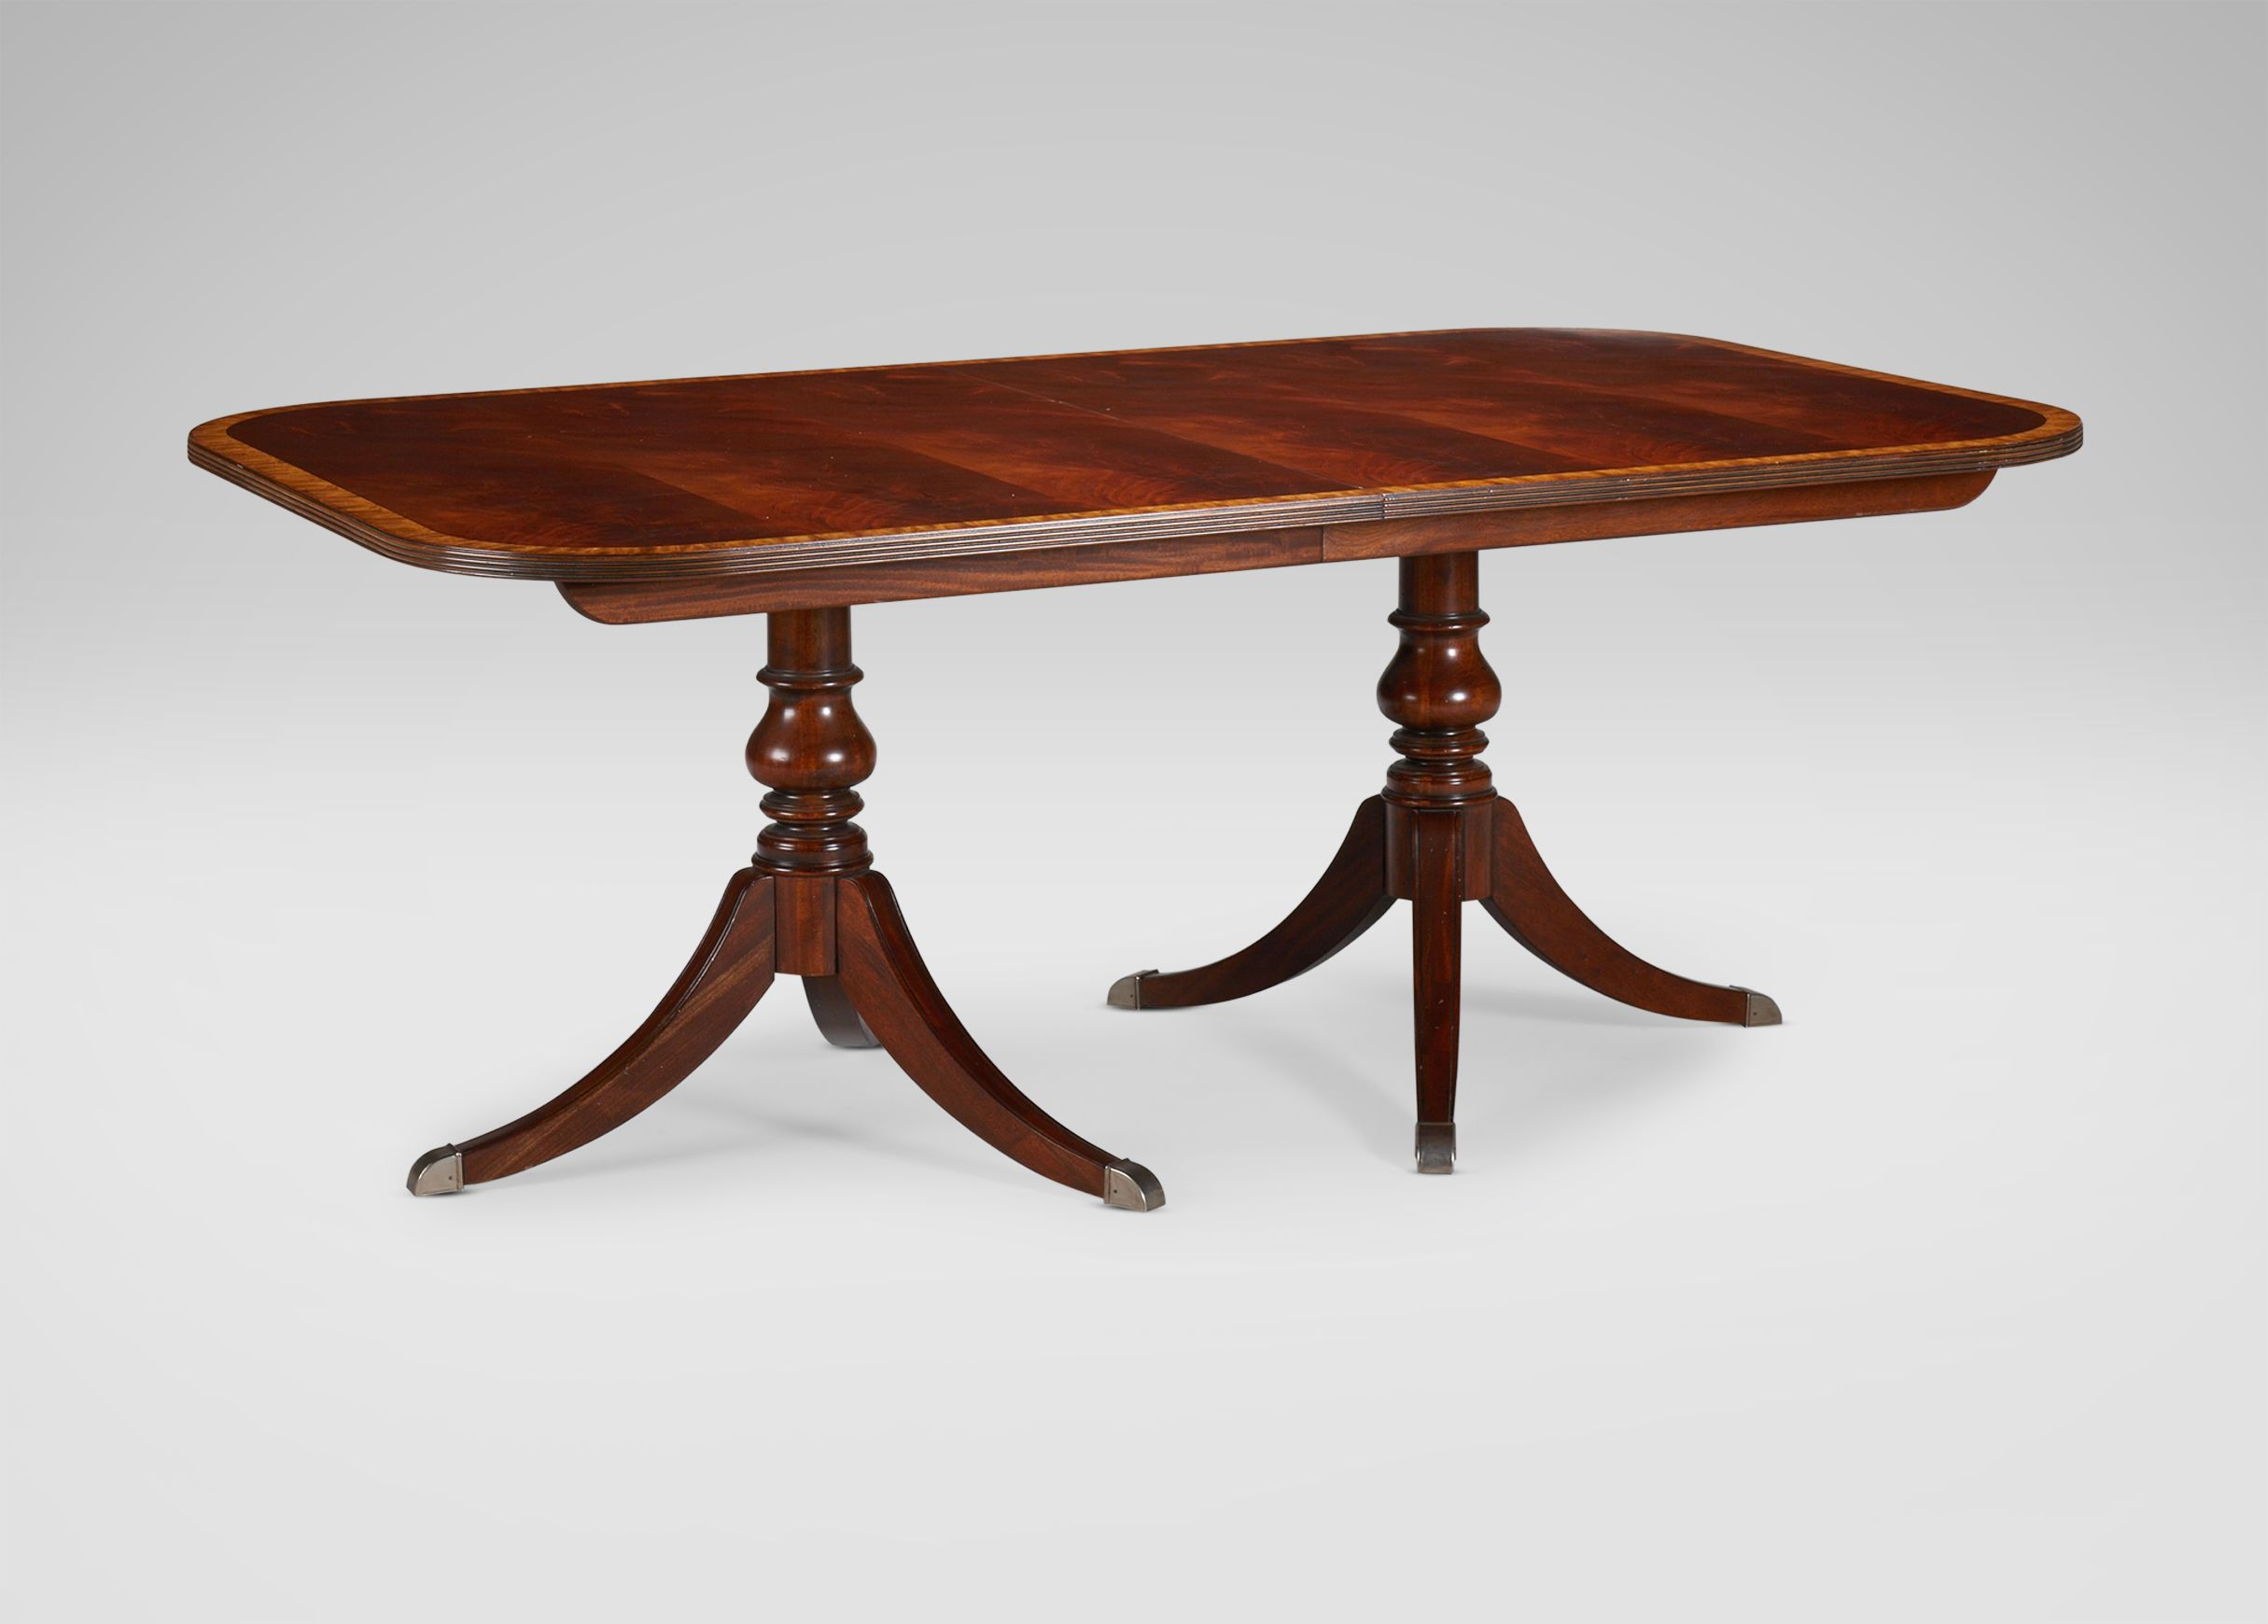 Abbott dining table ethan allen dining options by for Ethan allen dining room tables